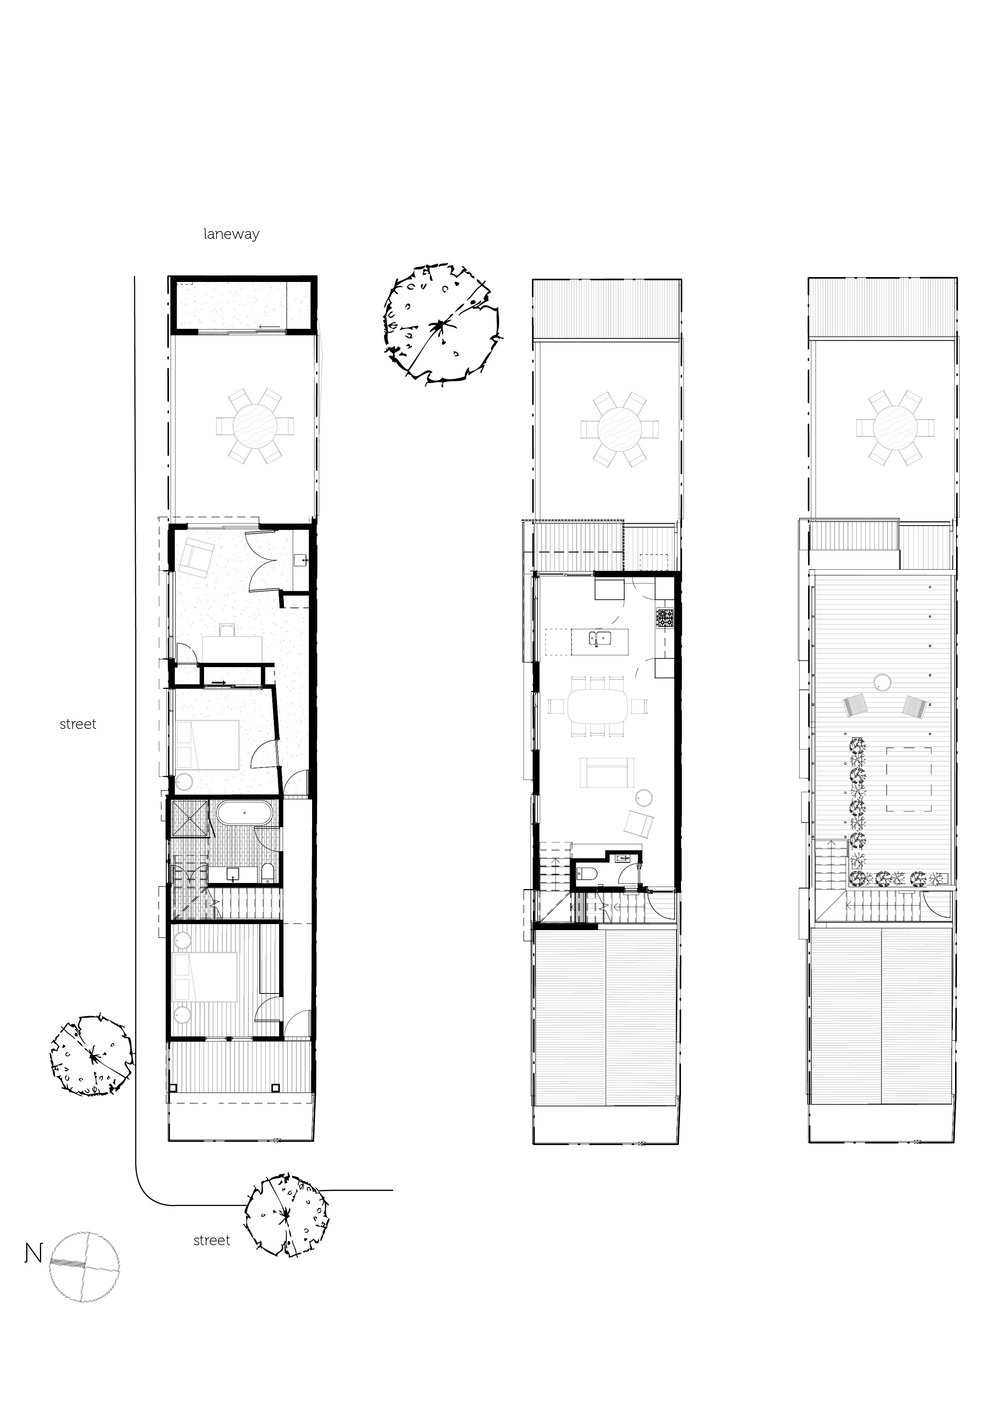 Ground, First and Second Floor plans